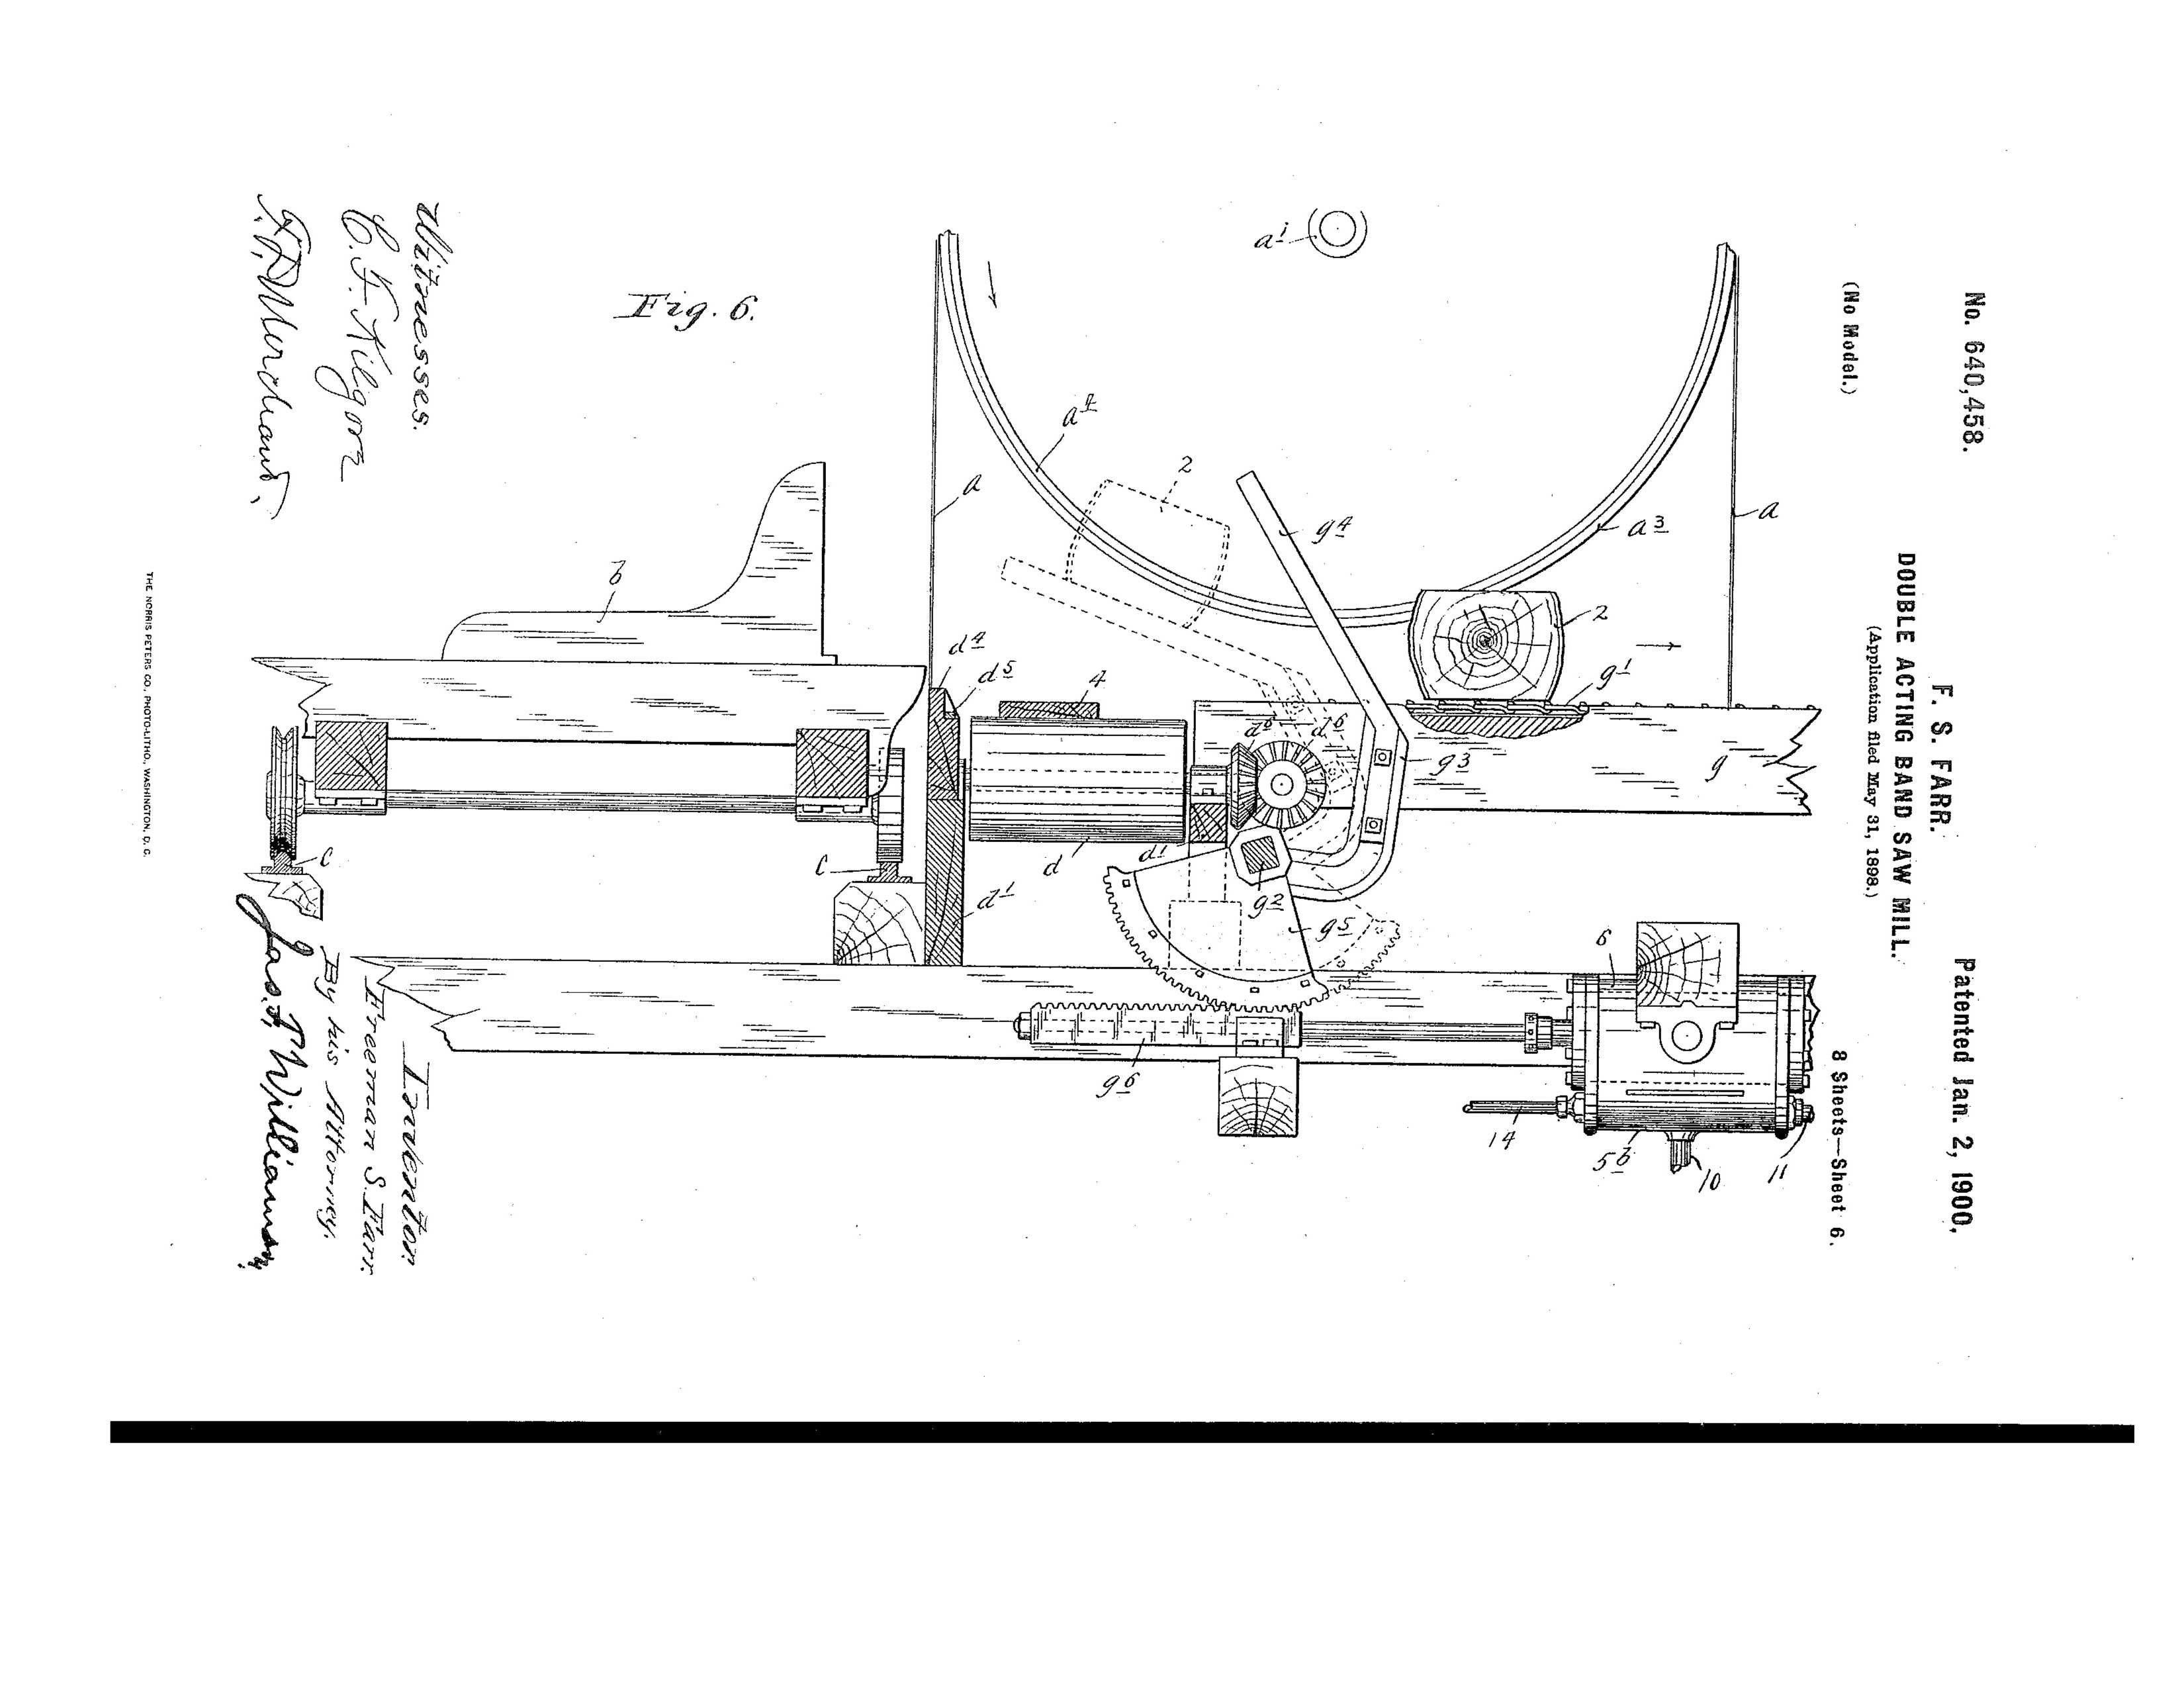 1898 Illustration of a double acting band saw mill.